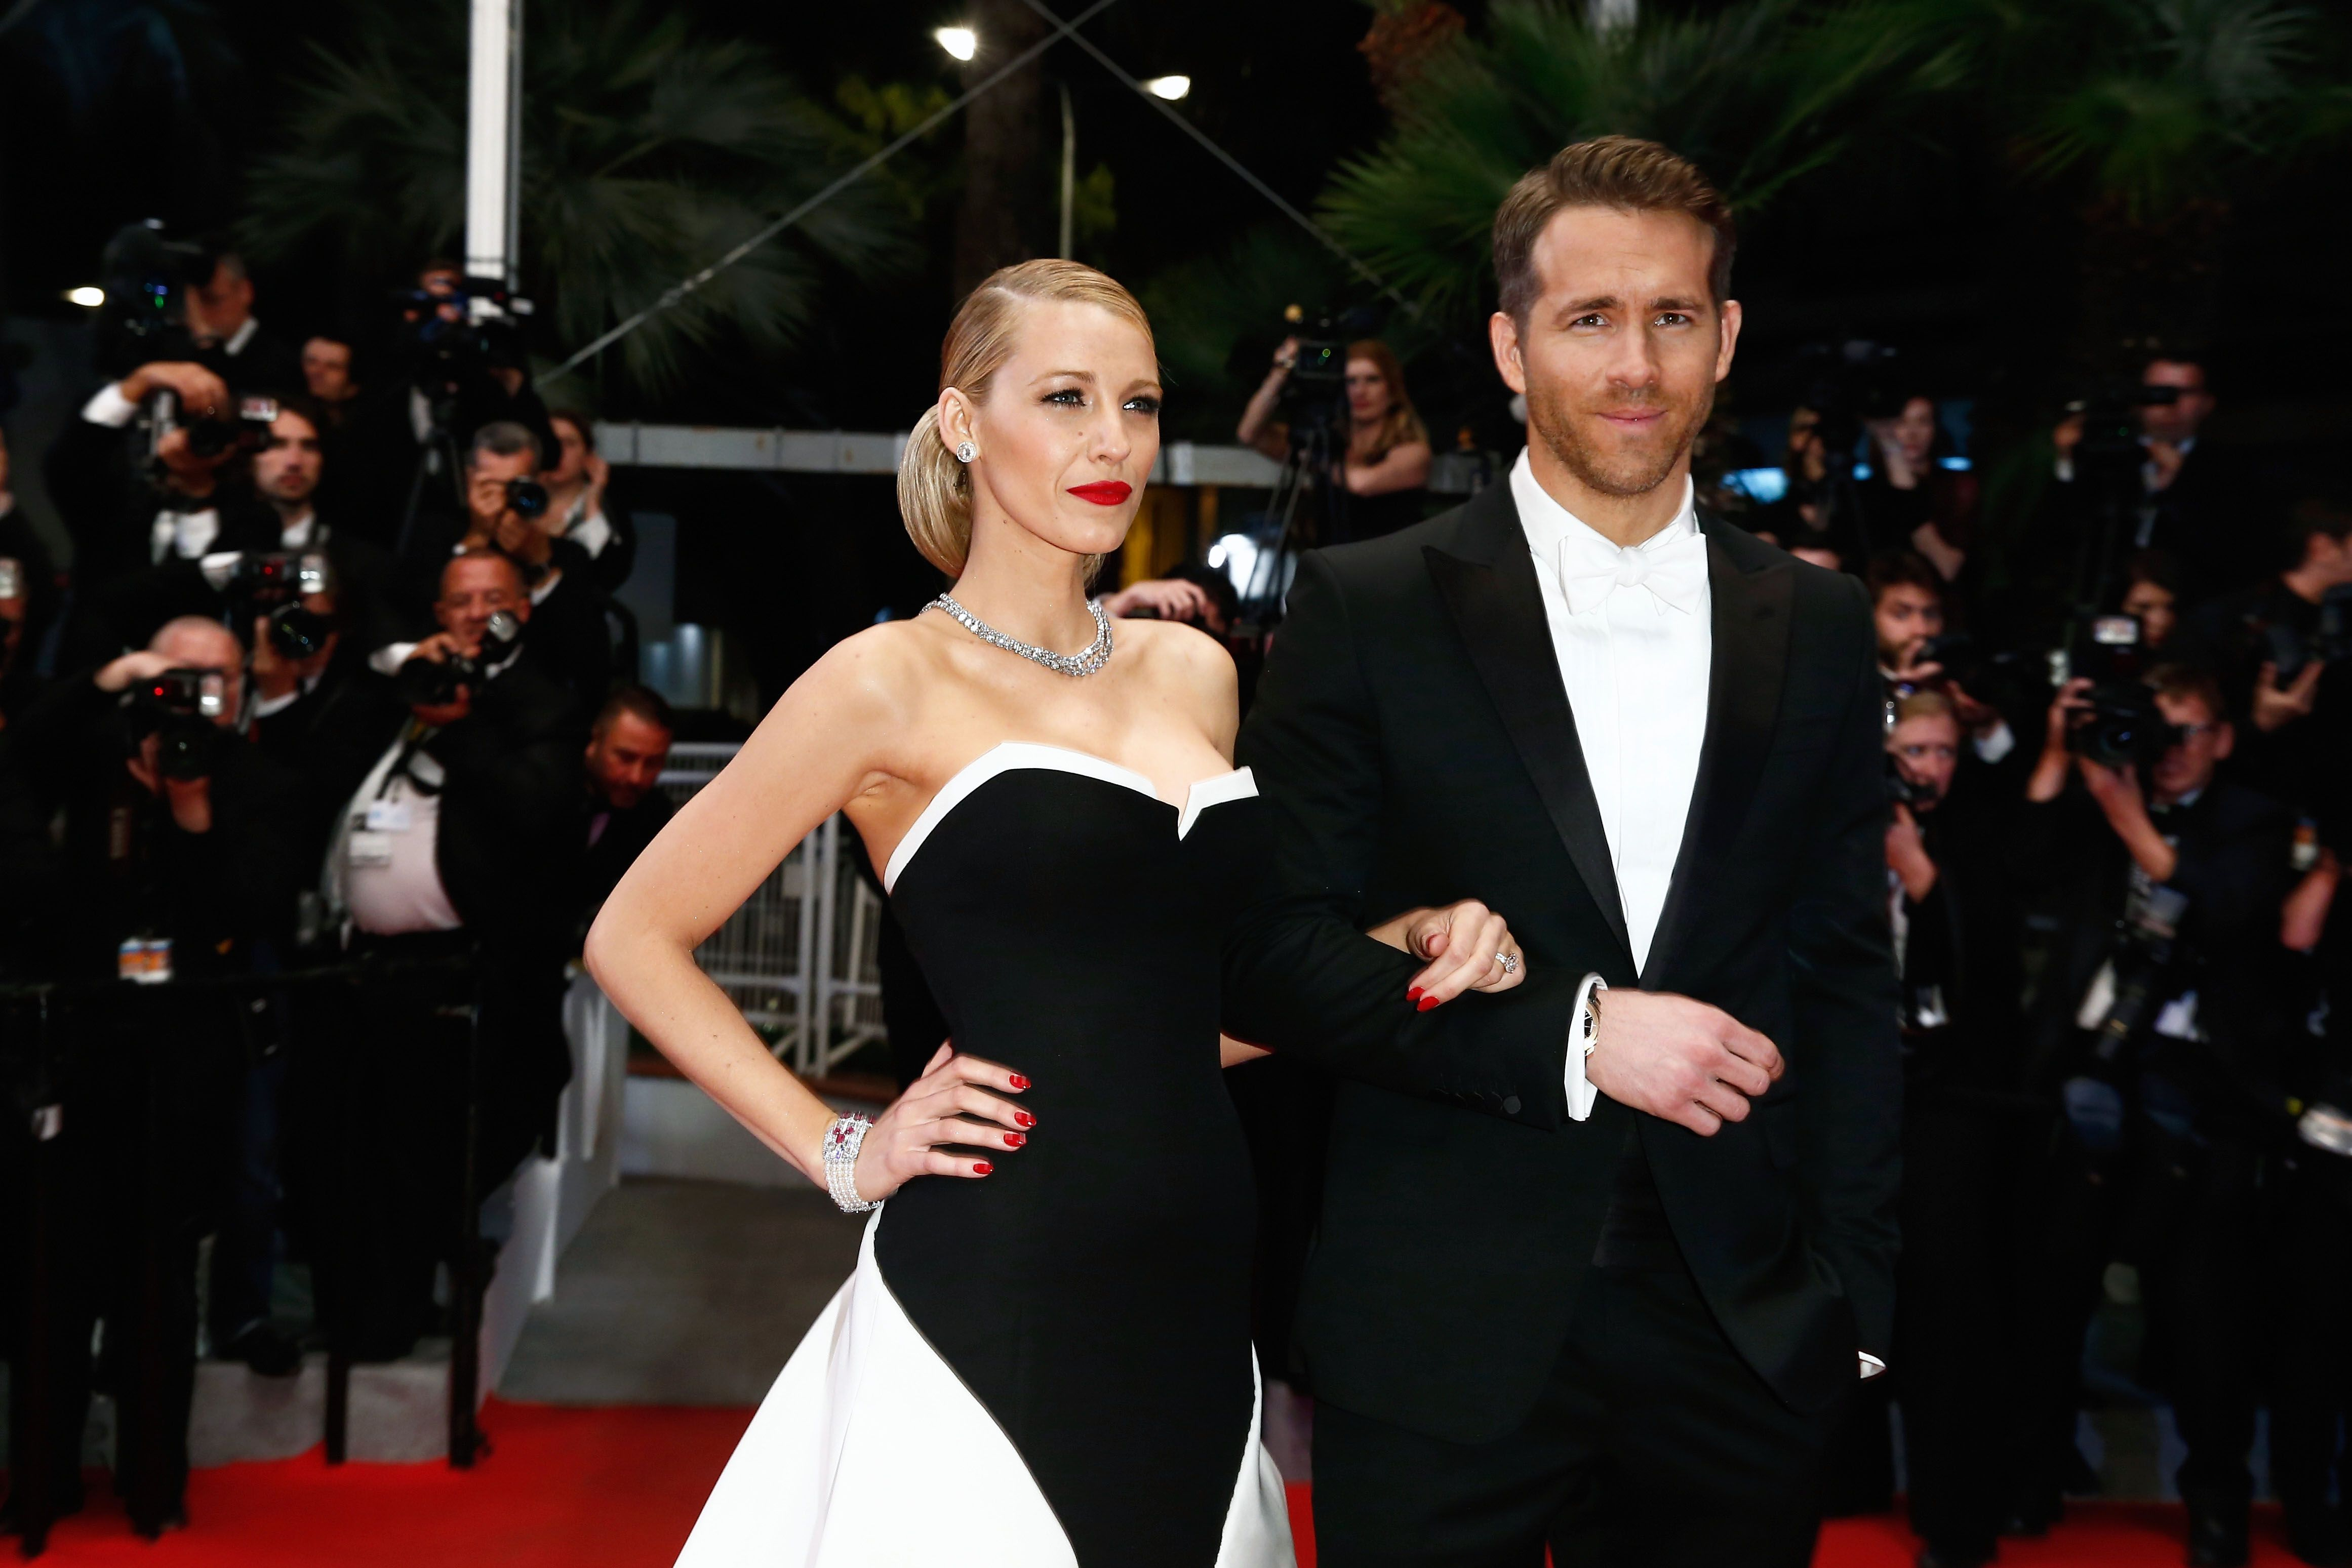 Blake Lively and Ryan Reynolds' Plantation Wedding Photos Are Now Banned from Pinterest